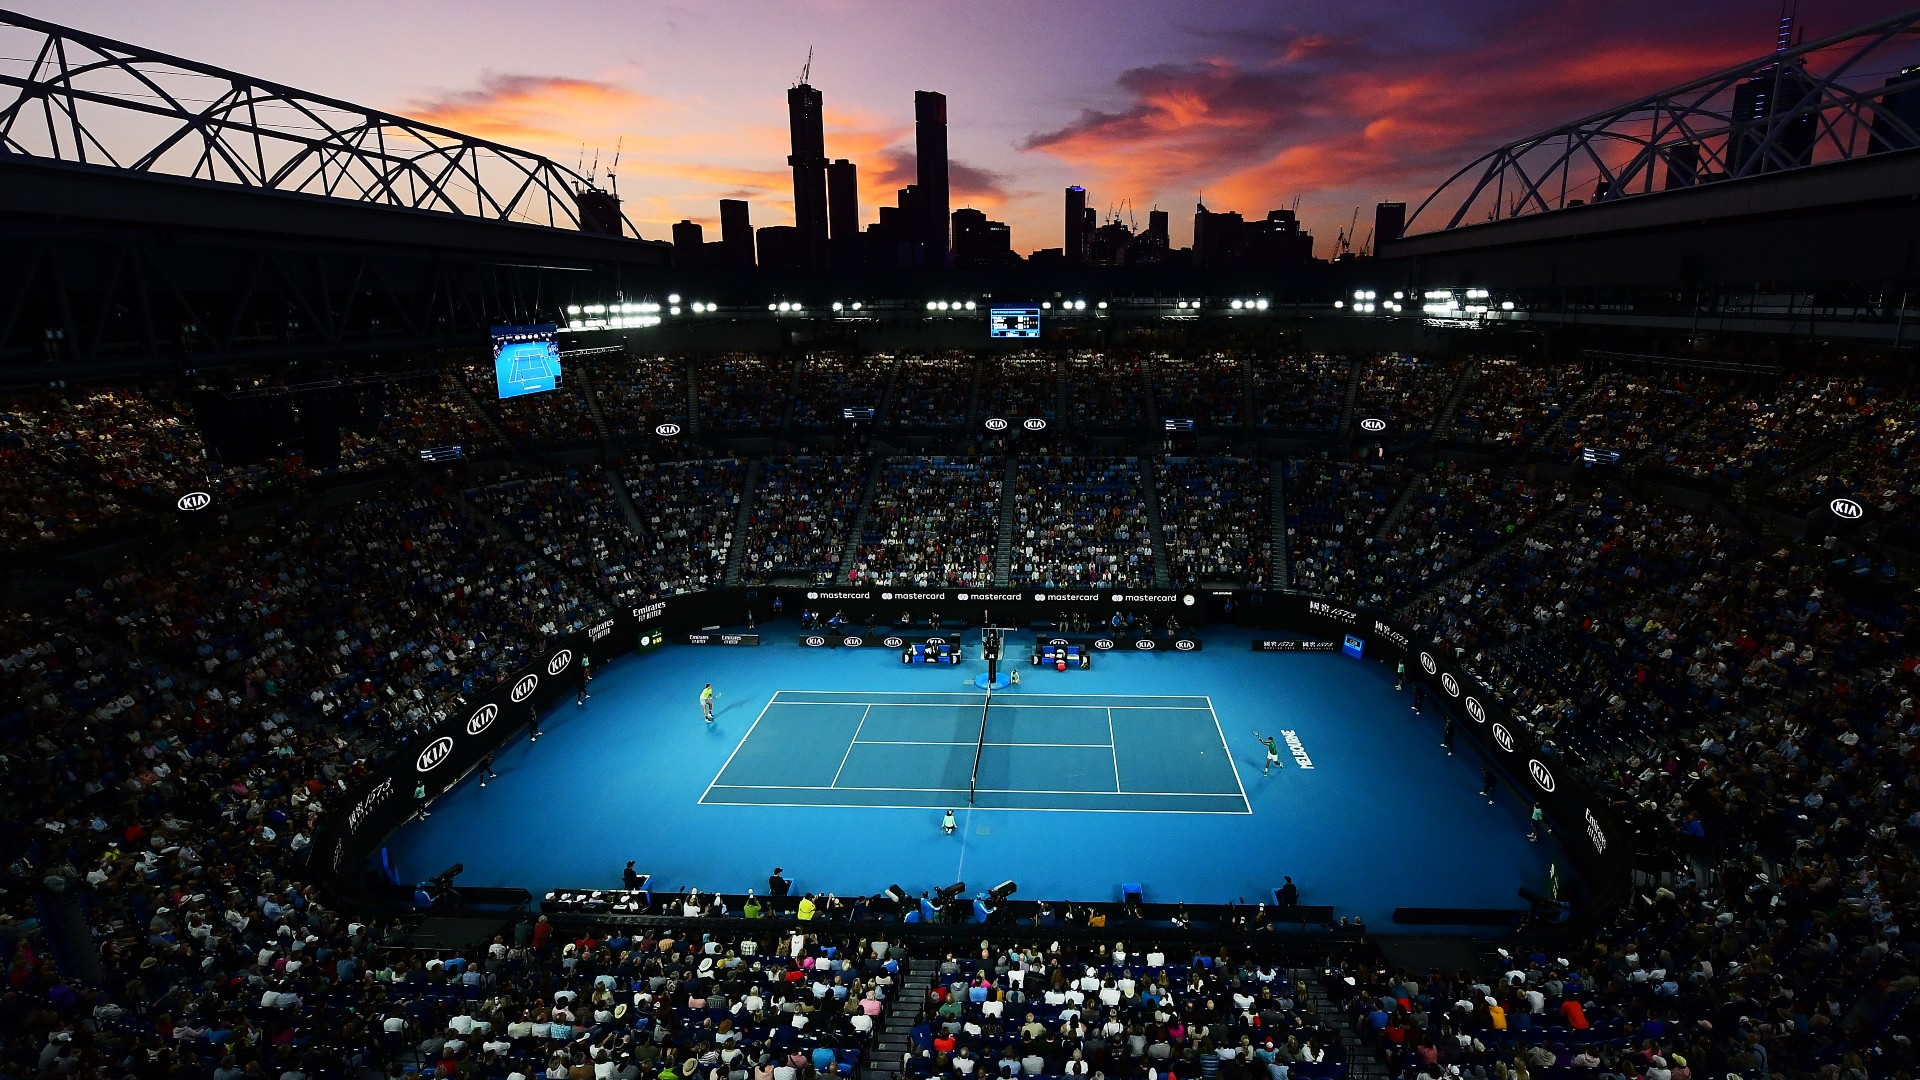 Australian Open schedule 2021: TV coverage, channels & more to watch every match in tennis Grand Slam